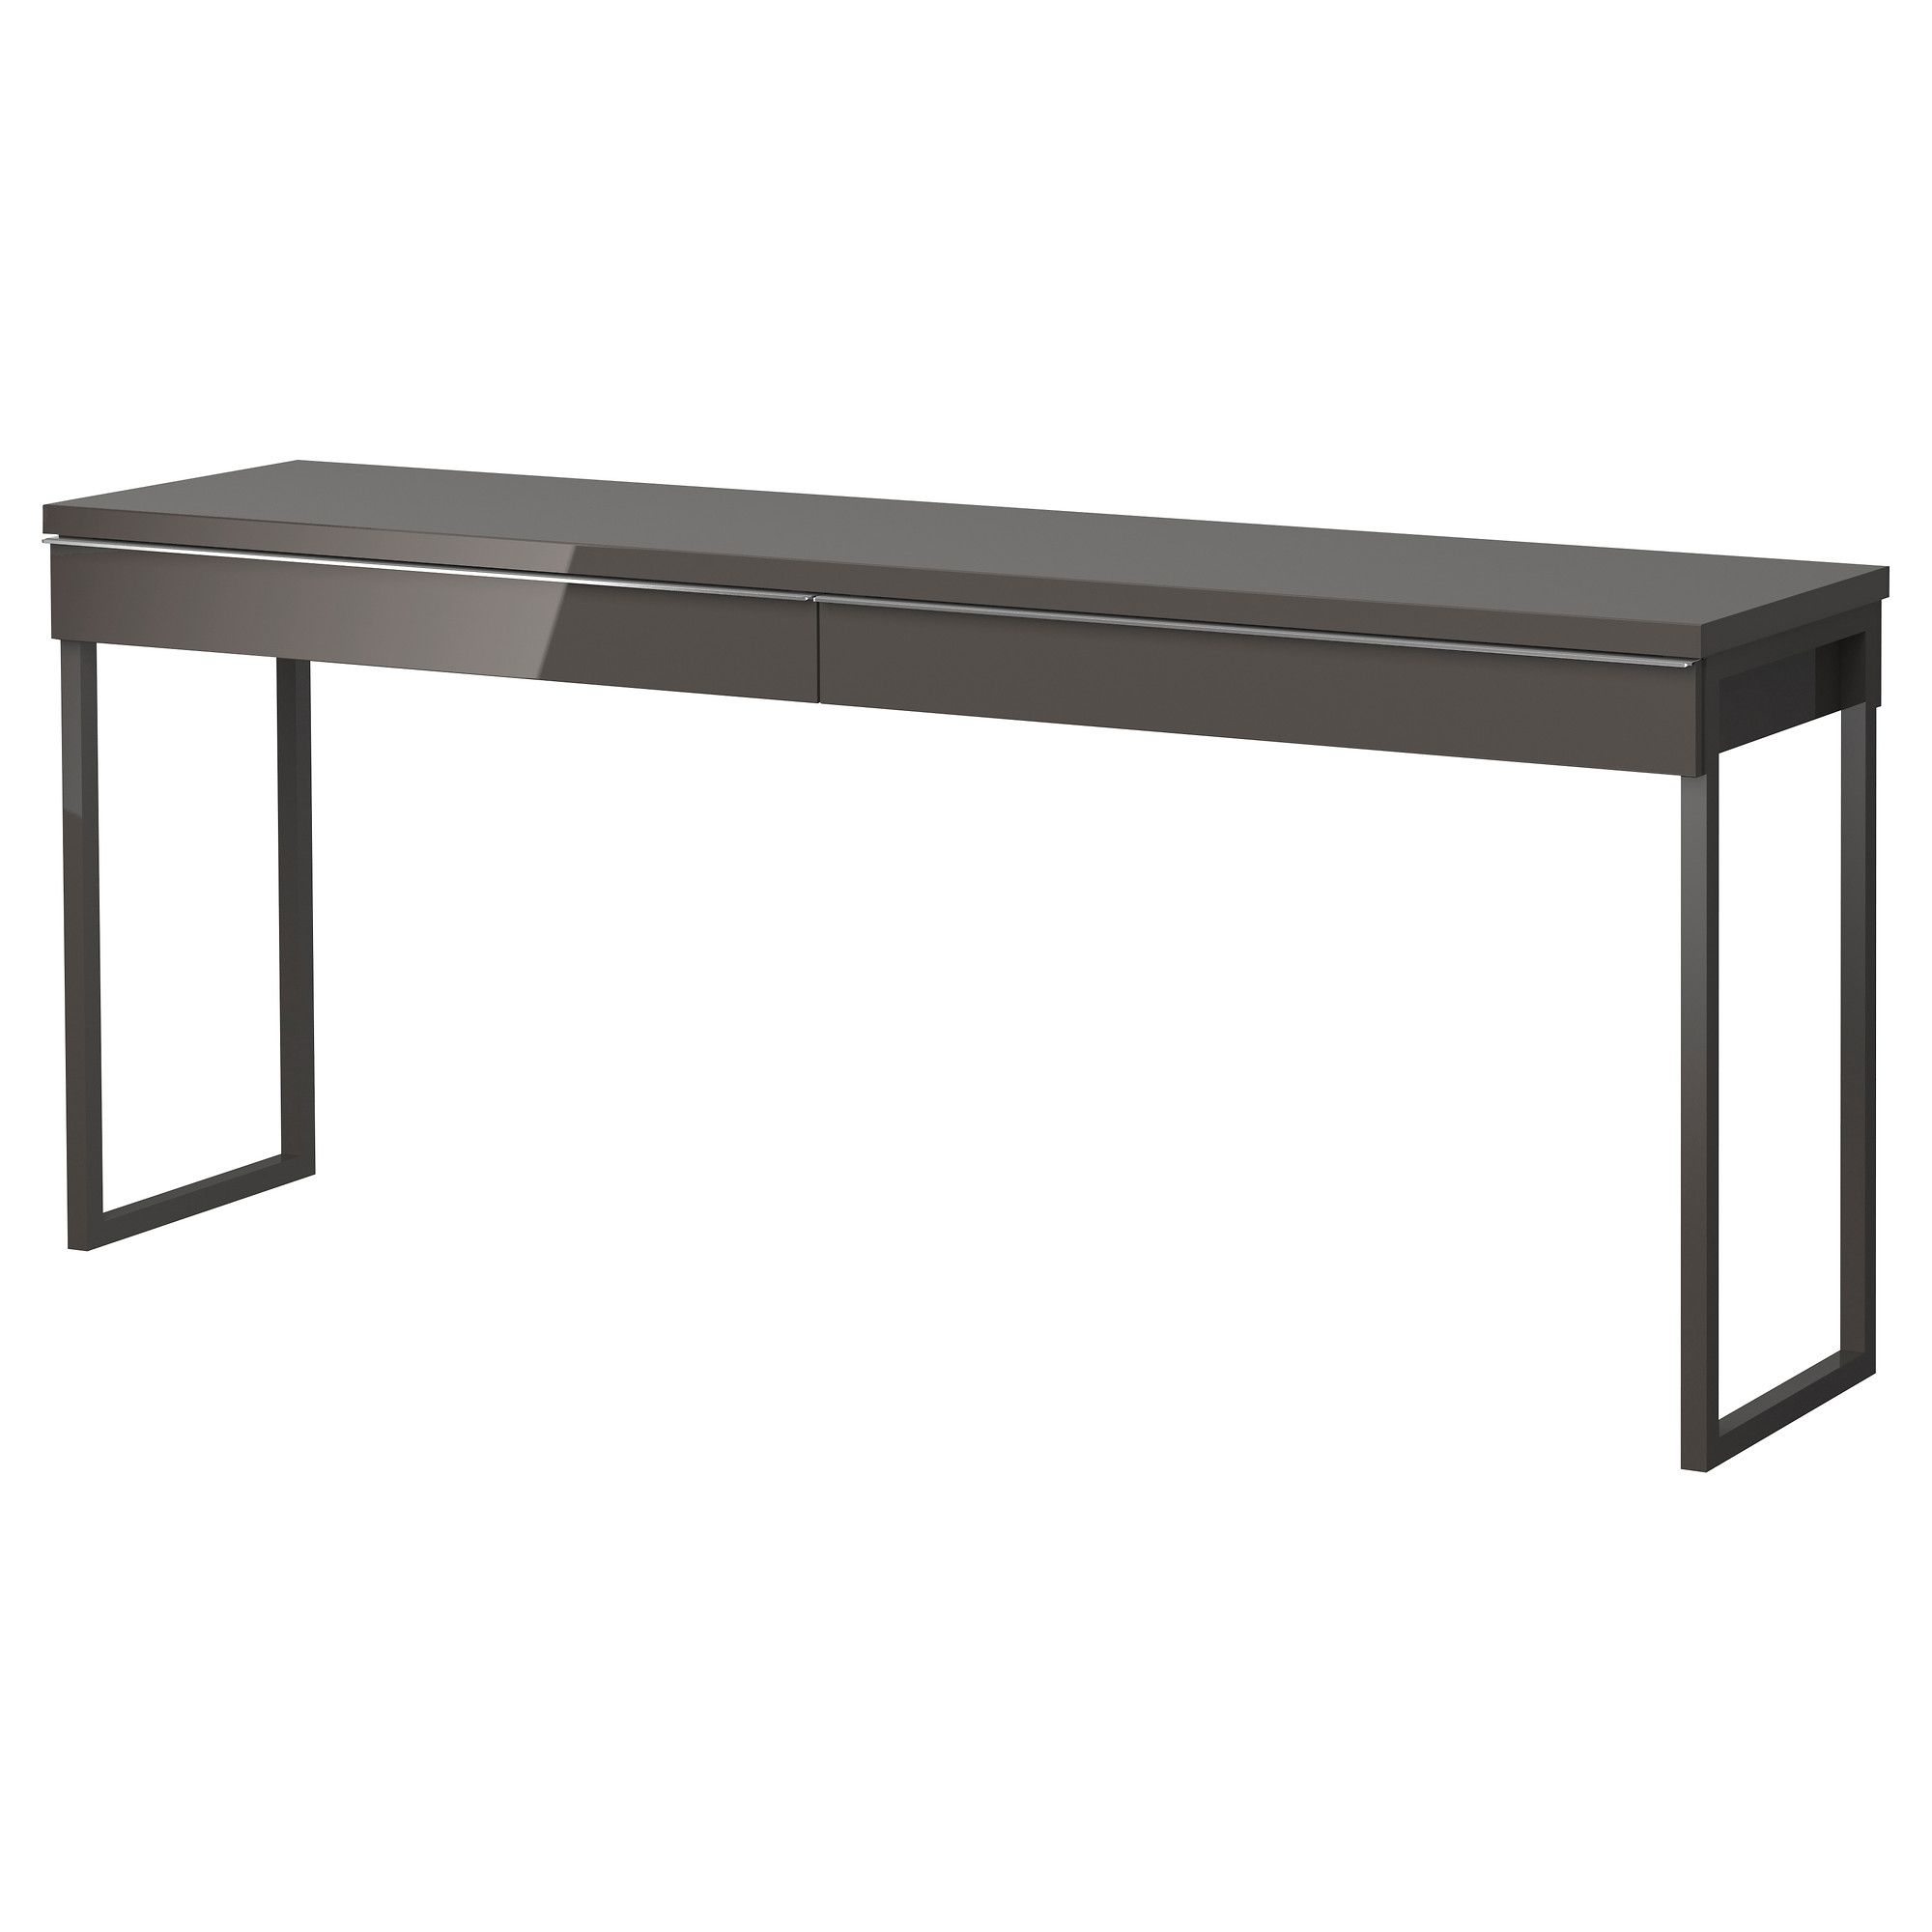 Eckschreibtisch weiß ikea  BESTÅ BURS Desk - high gloss gray - IKEA BESTÅ BURS Desk IKEA Two ...